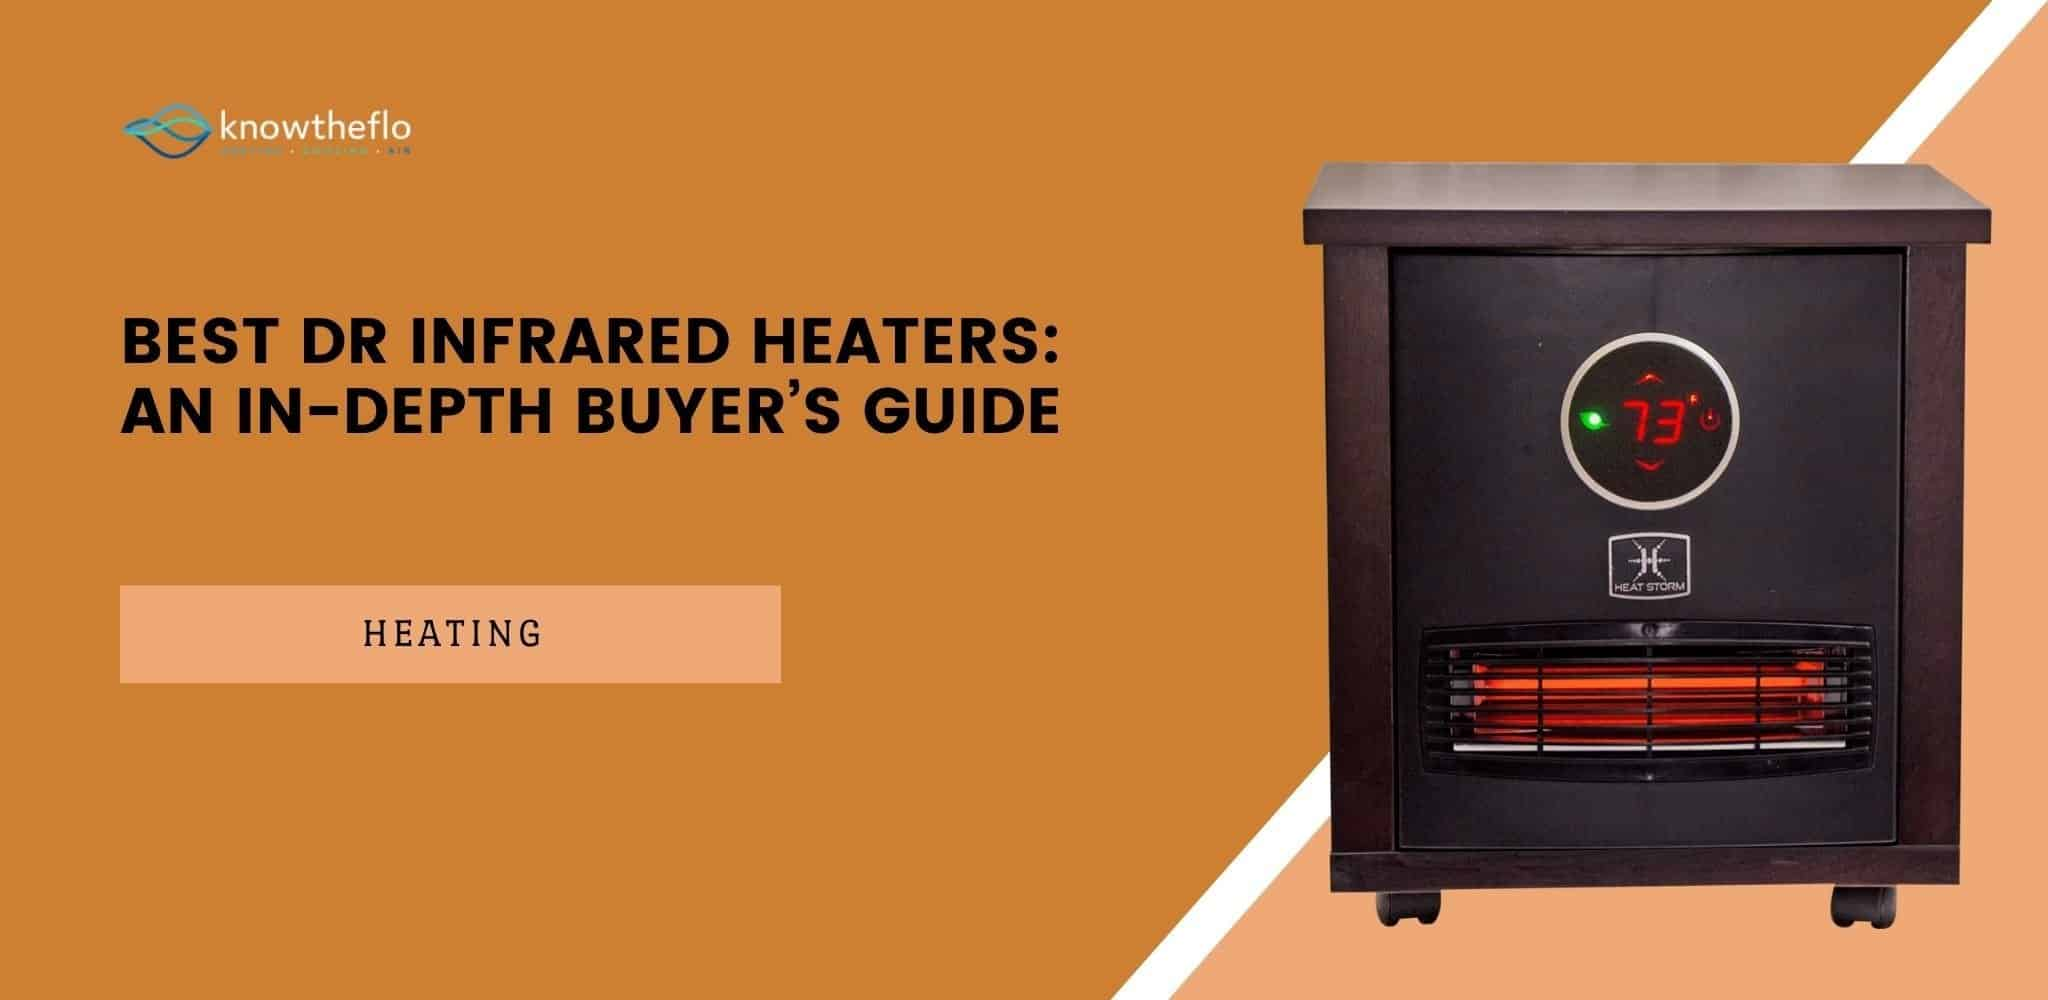 Best Dr Infrared Heaters 2020 - An In-Depth Buyer's Guide